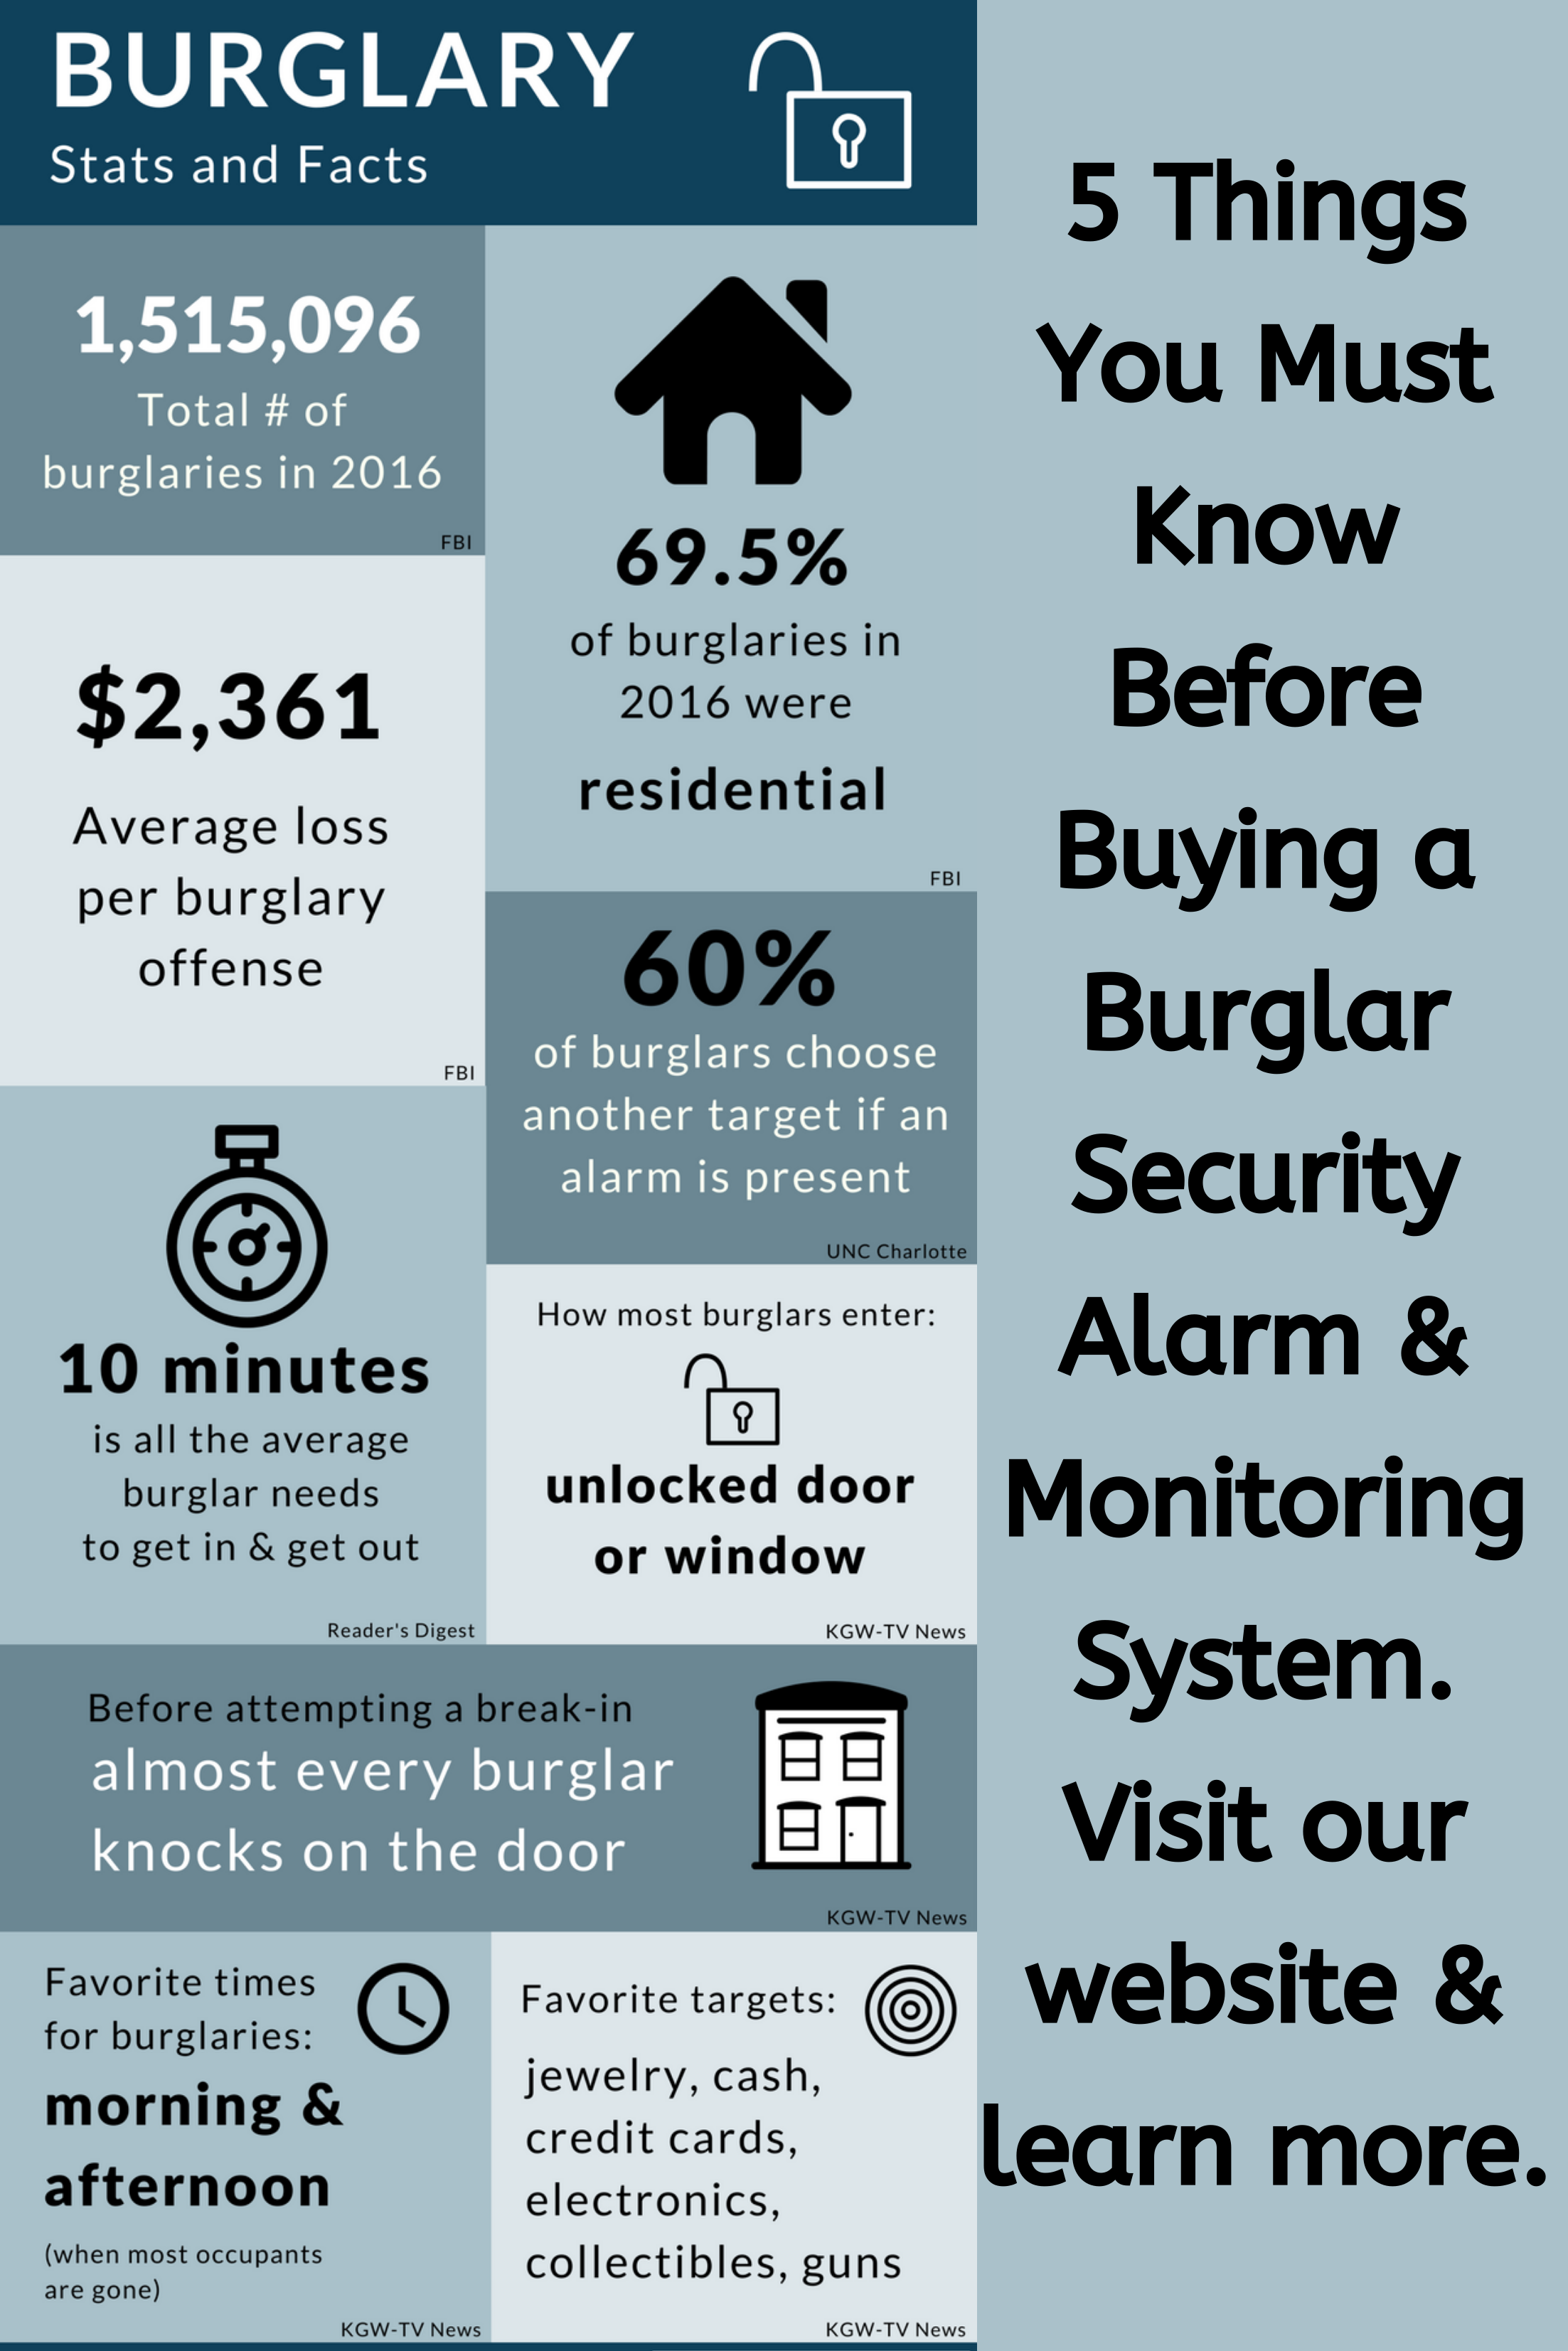 5 Things You Must Know Before Buying Burglar Security Alarm System Burglar Alarm System Security Alarm